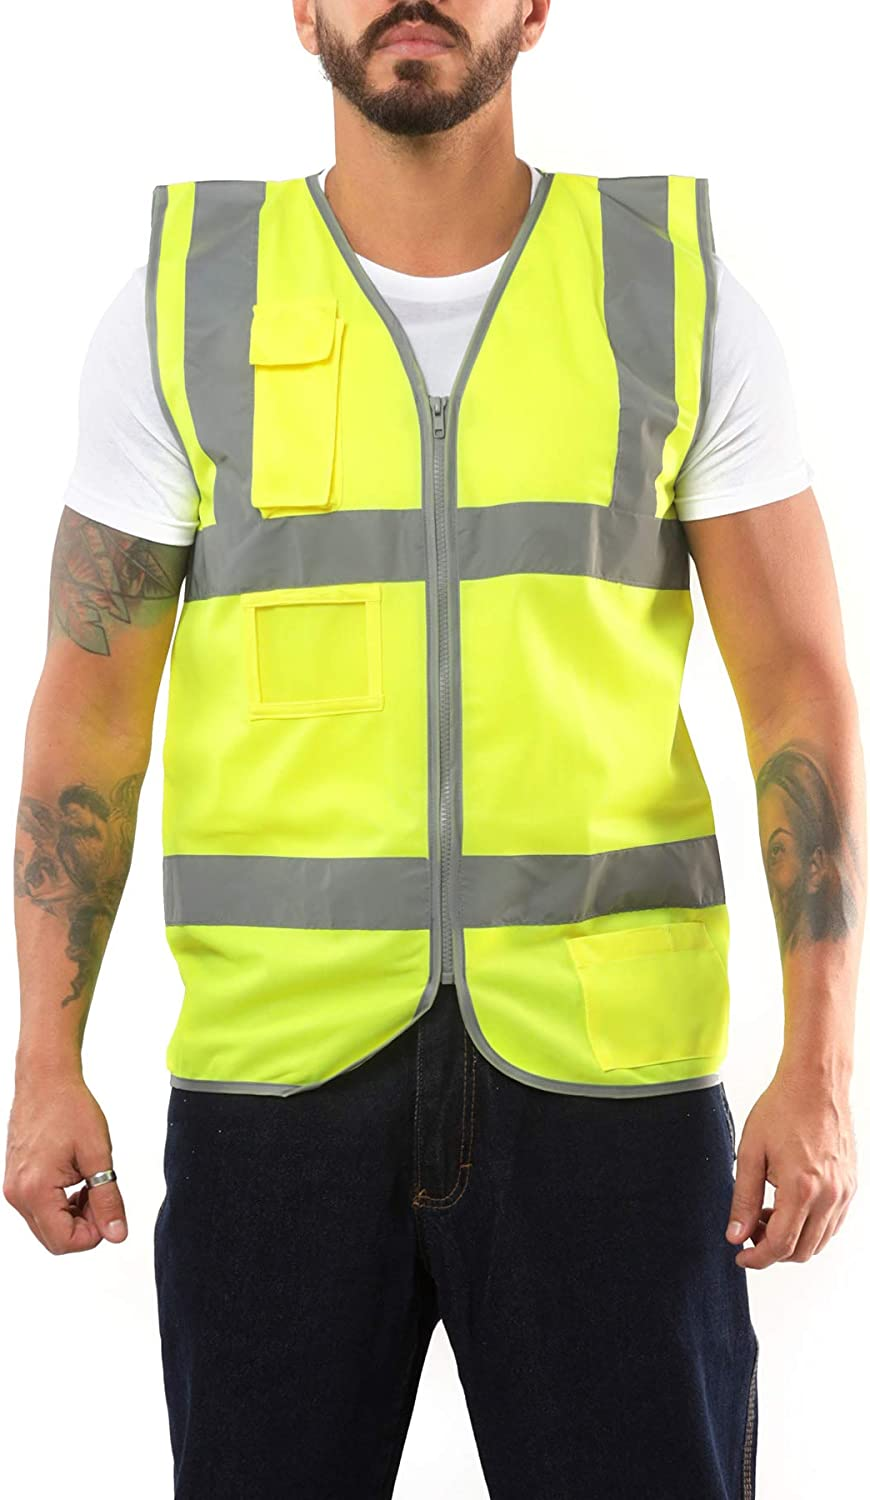 High Visibility Safety Vest with Kolossus New color Indianapolis Mall by Mesh Back